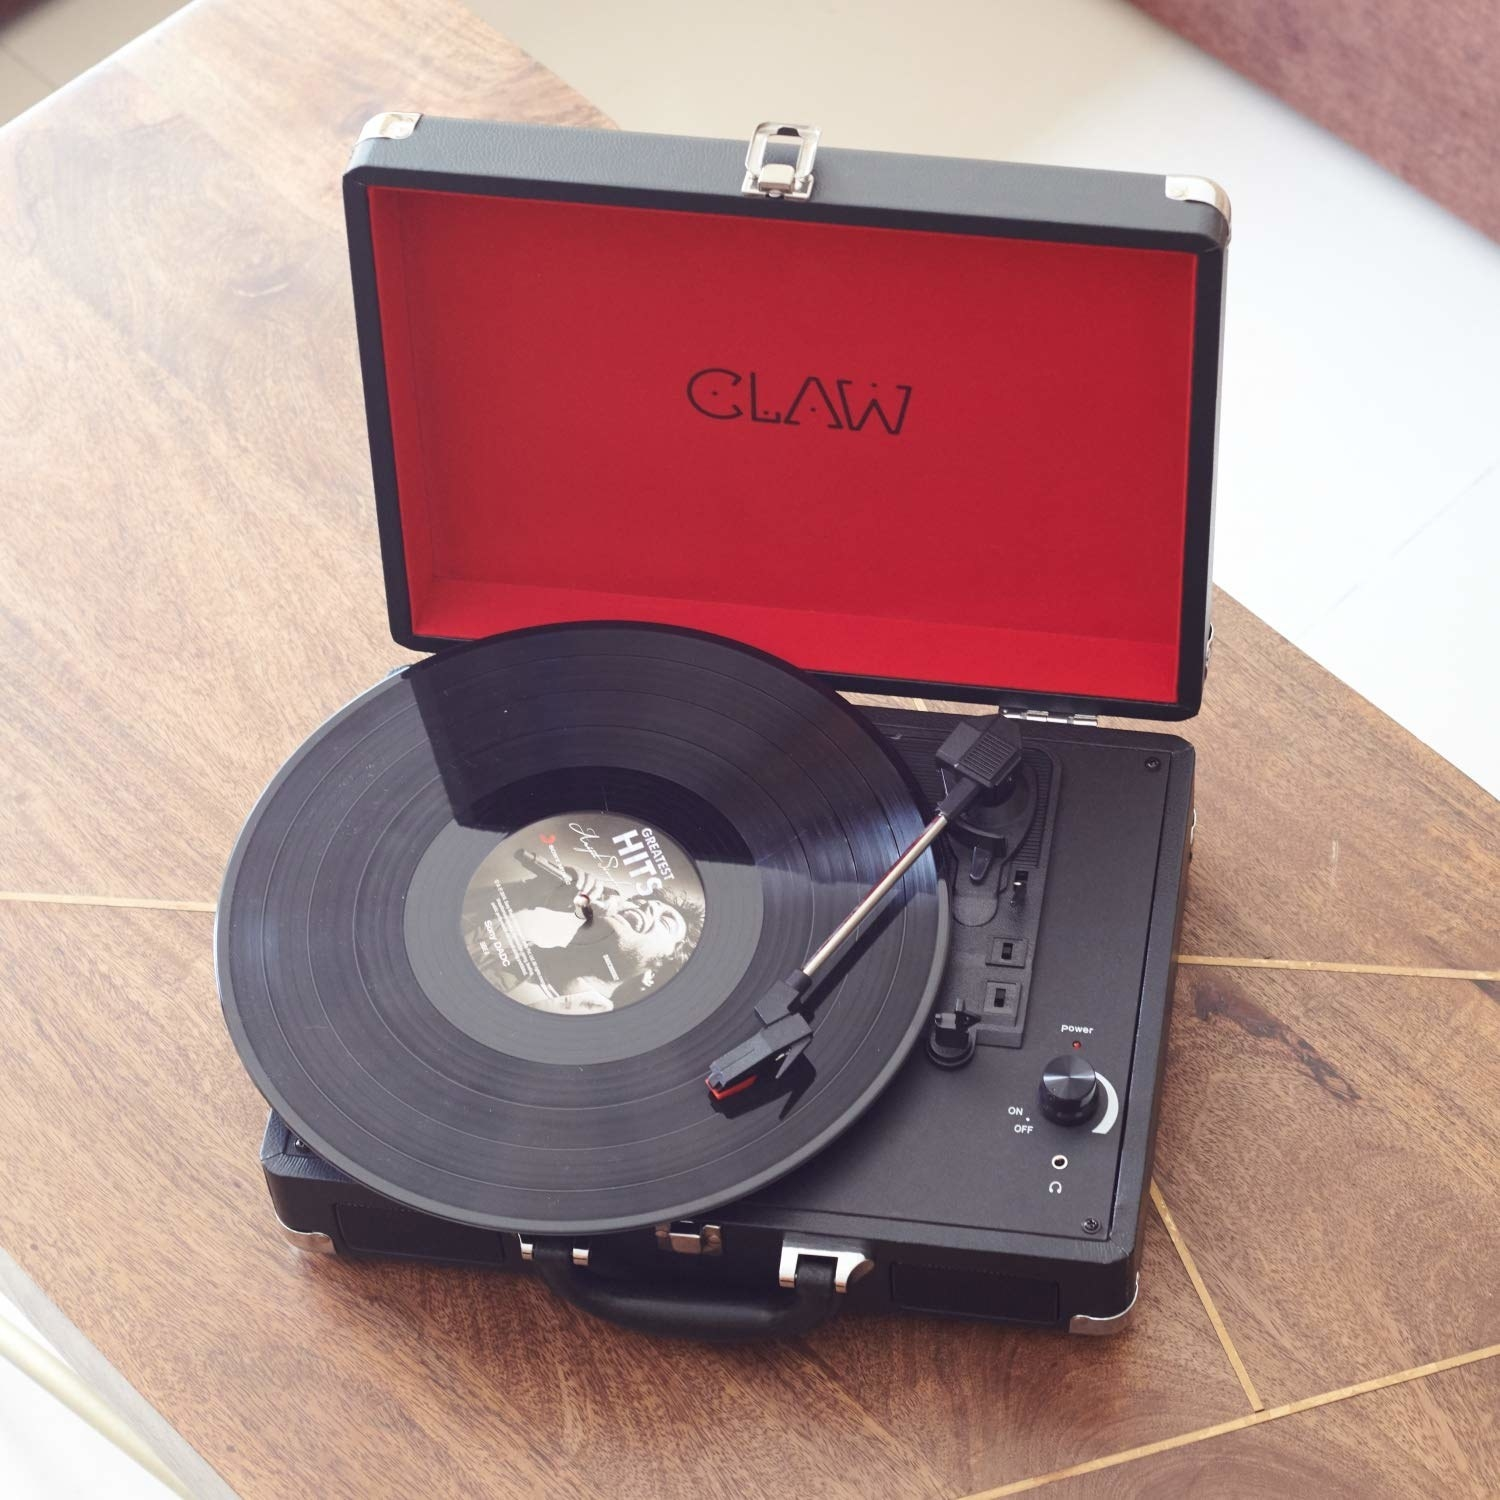 A turntable on a wooden table